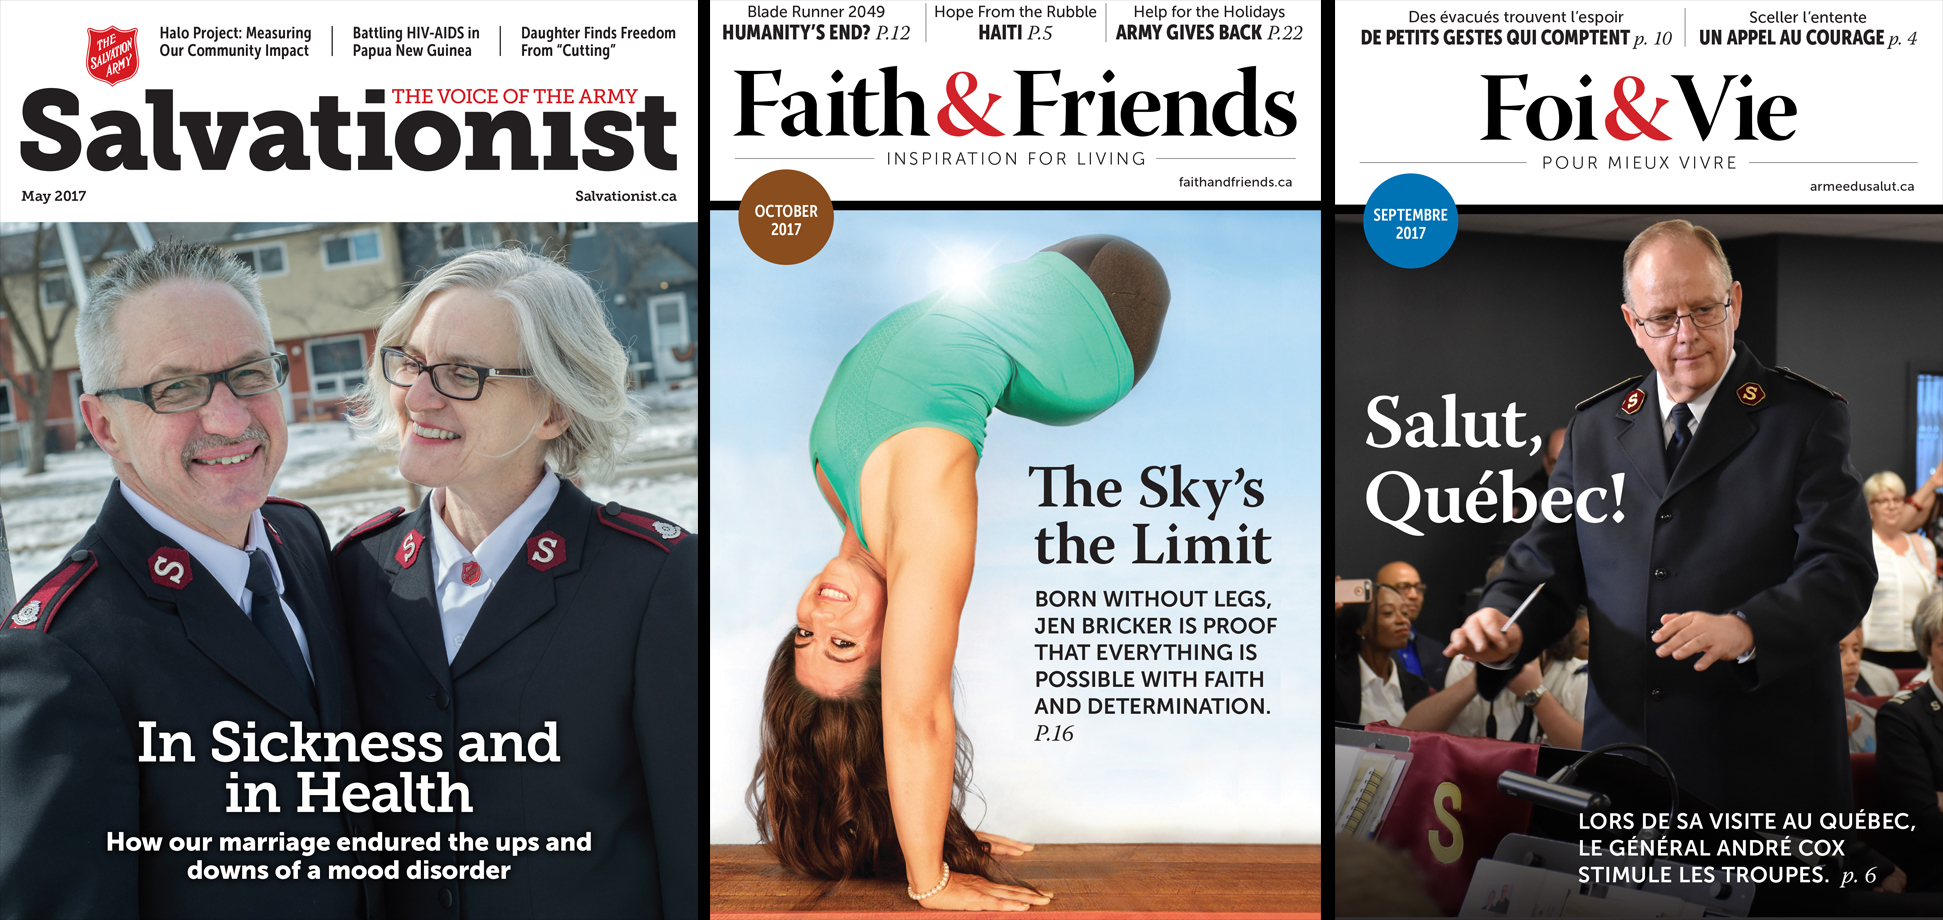 The Canada and Bermuda Tty publishes three magazines: Salvationist, Faith & Friends and Foi & Vie